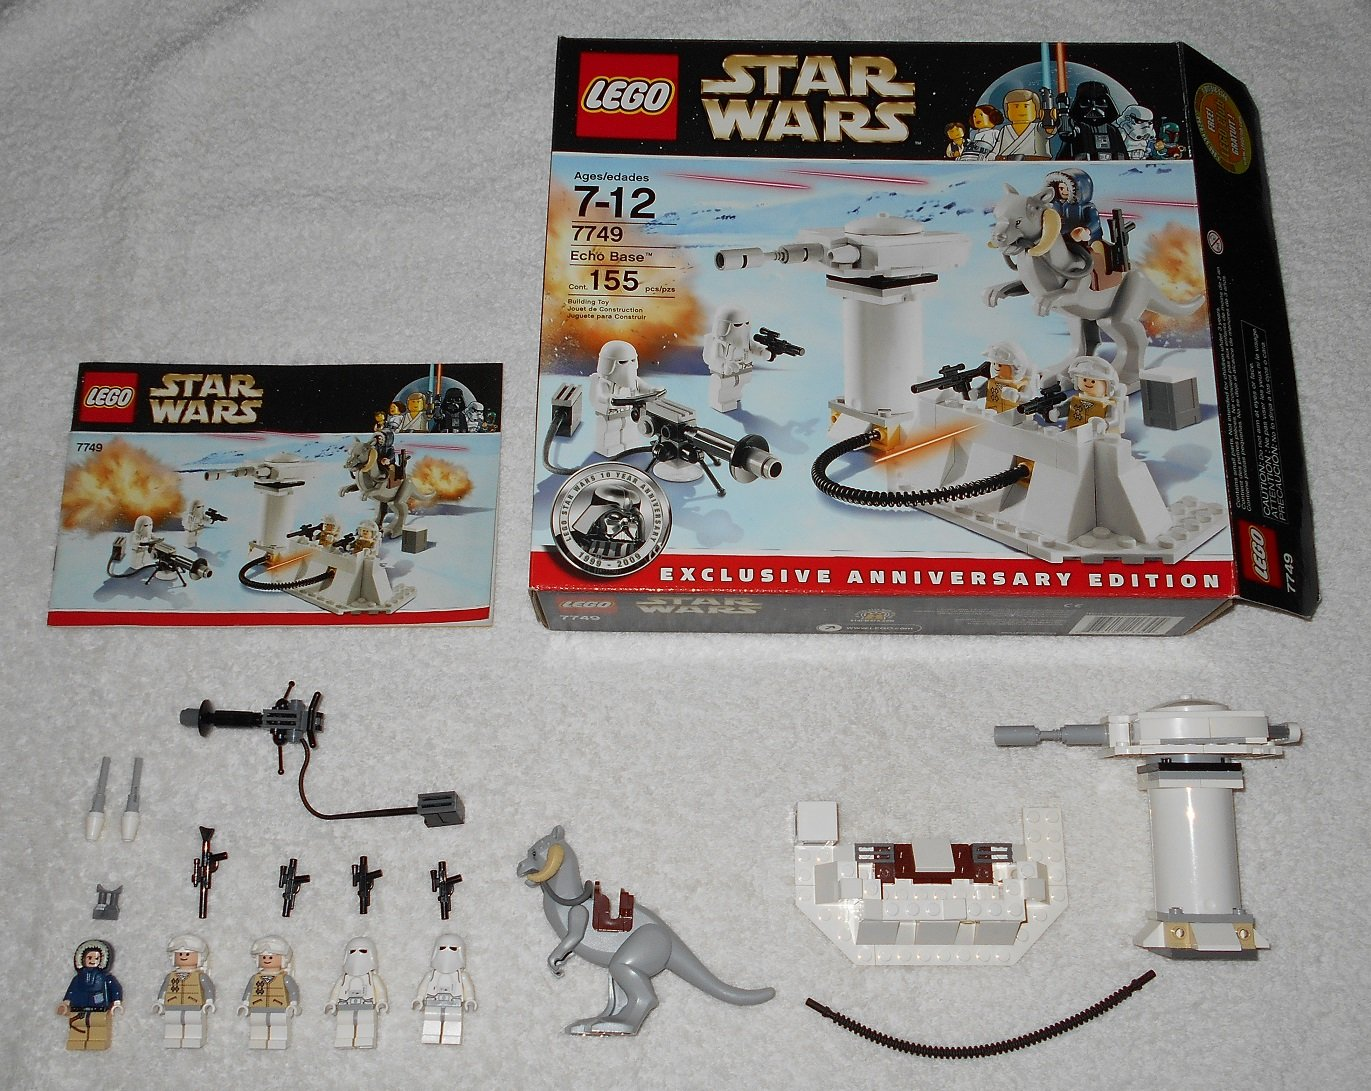 Lego 7749 Echo Base Star Wars 2009 Complete Set W 10720 Juniors Police Helicopter Chase Instructions Box